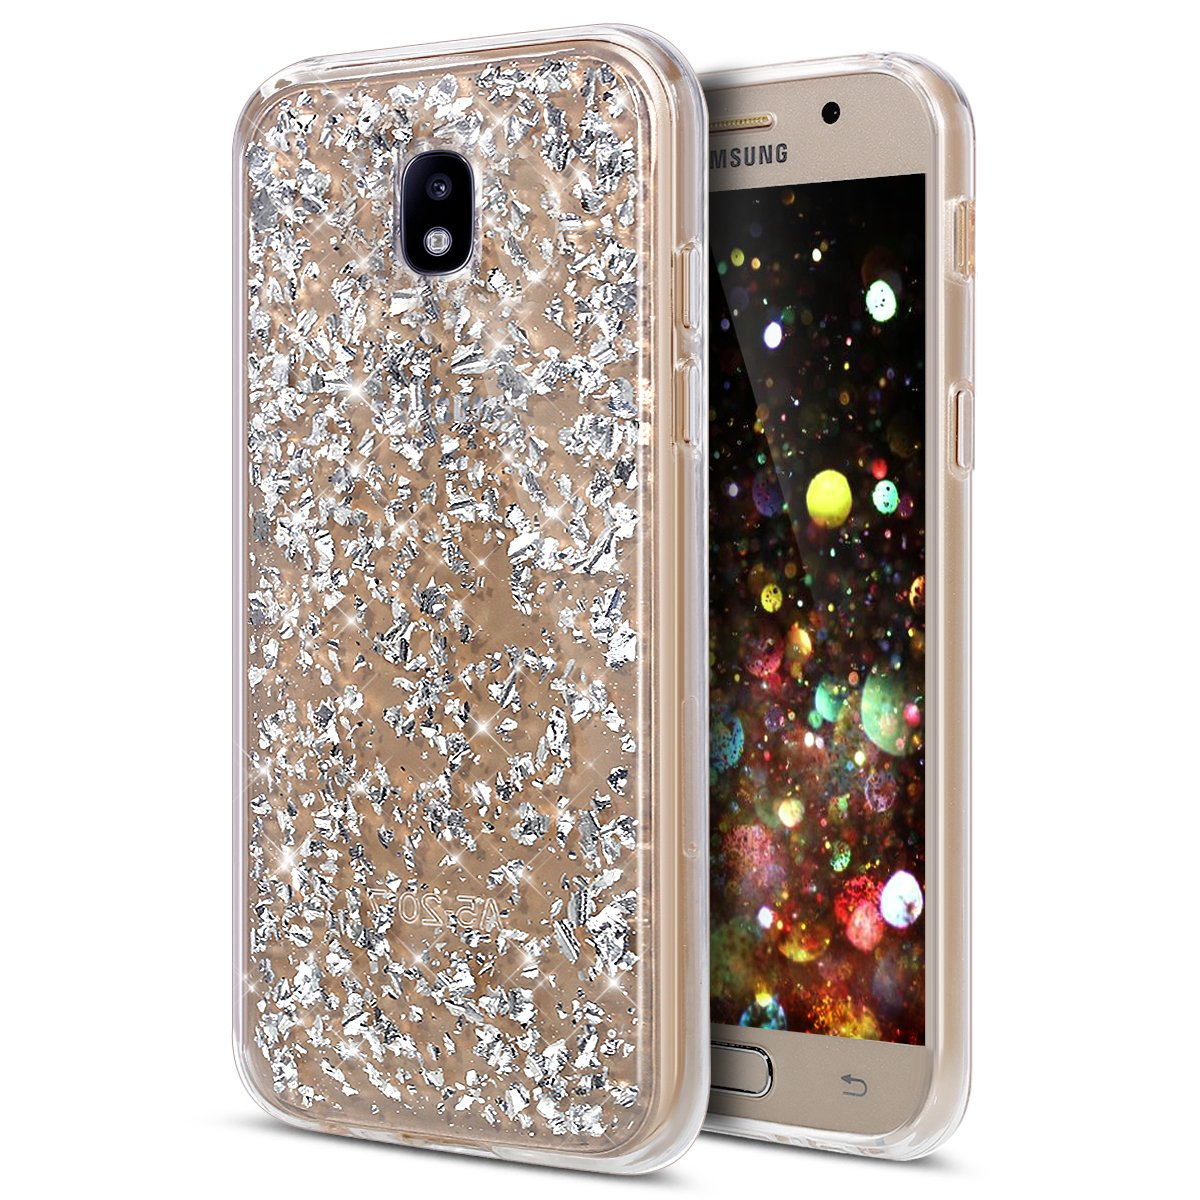 Galaxy J5 Pro Case, ikasus Ultra Thin Clear Crystal Bling Shiny Giltter Rhinestone Clear Rubber Frame Transparent TPU Soft Silicone Bumper Case Cover for Samsung Galaxy J5 Pro (2017) J530, Silver 4334995157